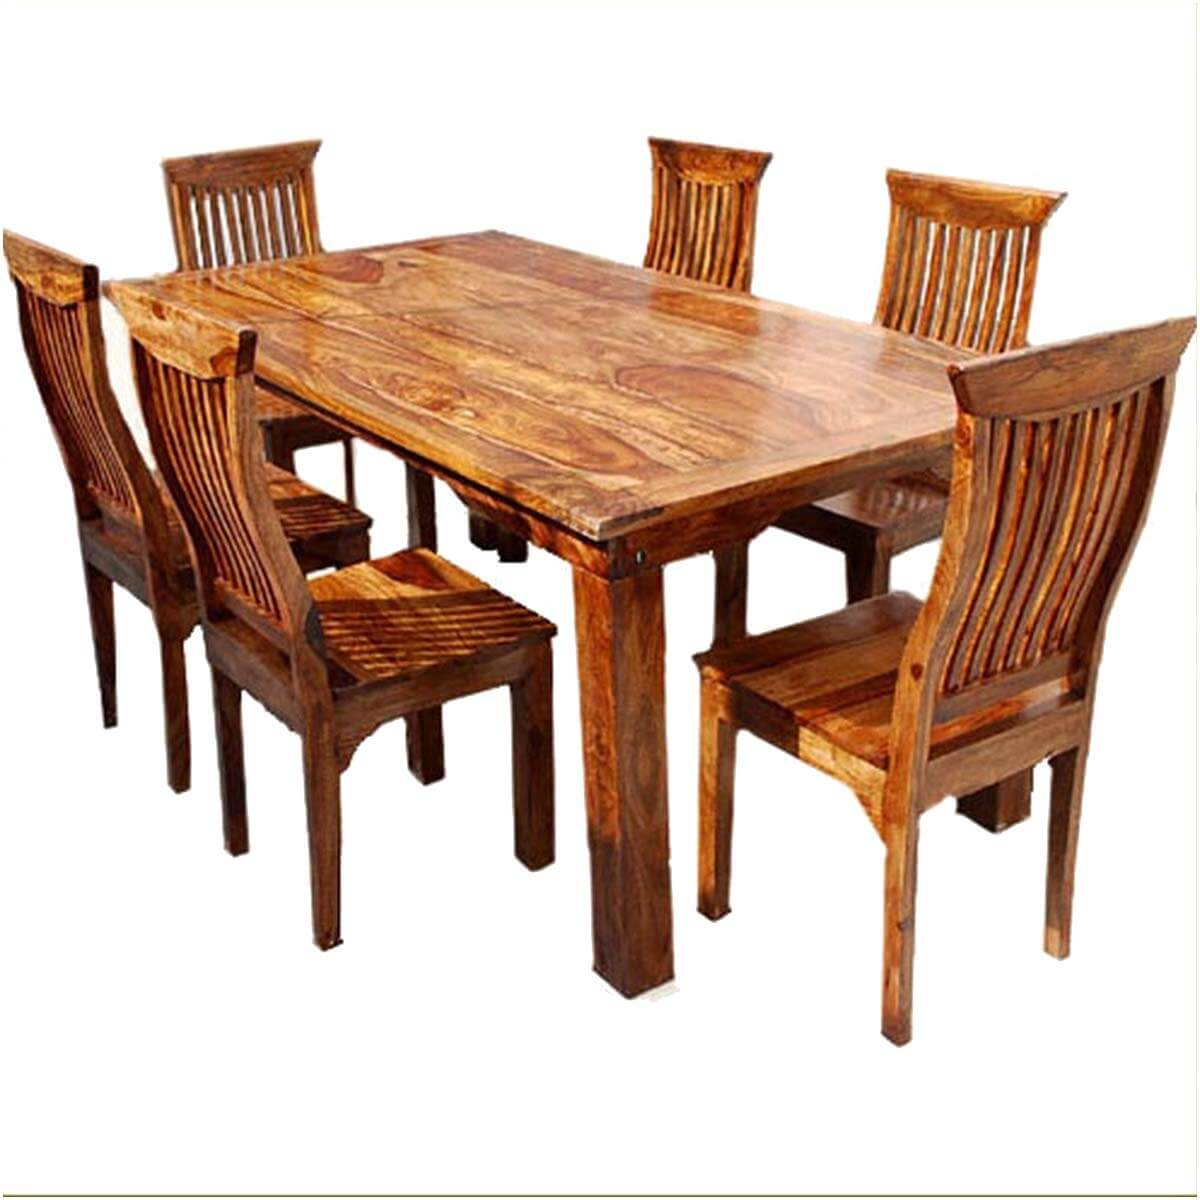 Rustic Wooden Dining Tables ~ Dallas ranch solid wood rustic dining table chairs hutch set